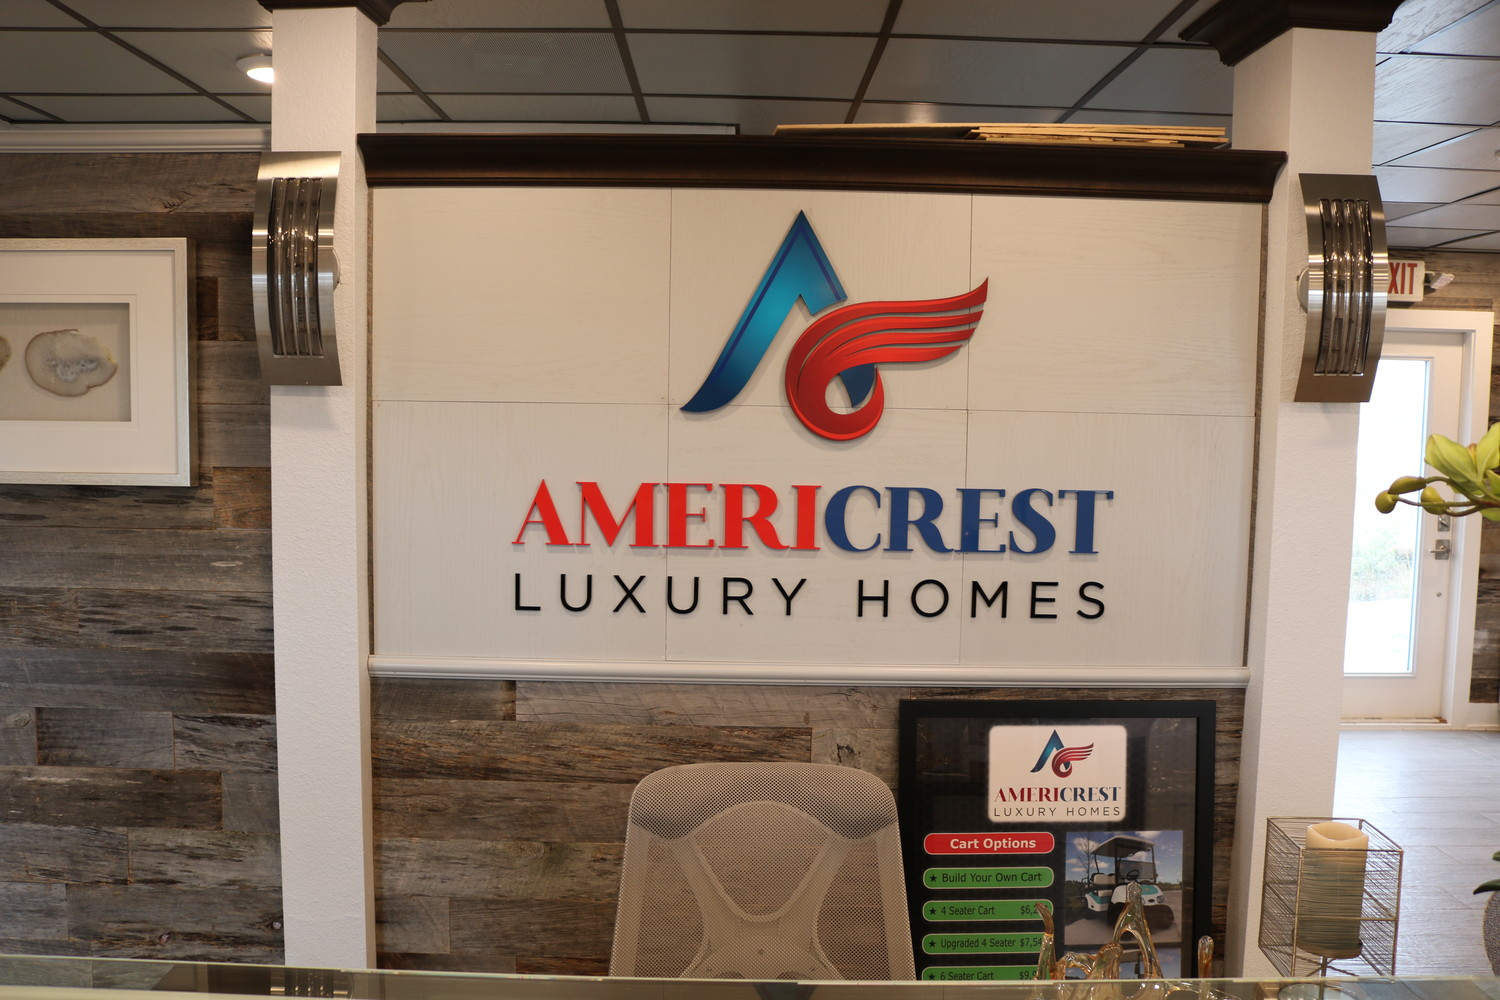 Americrest Luxury Homes is one of three builders at Beachwalk.